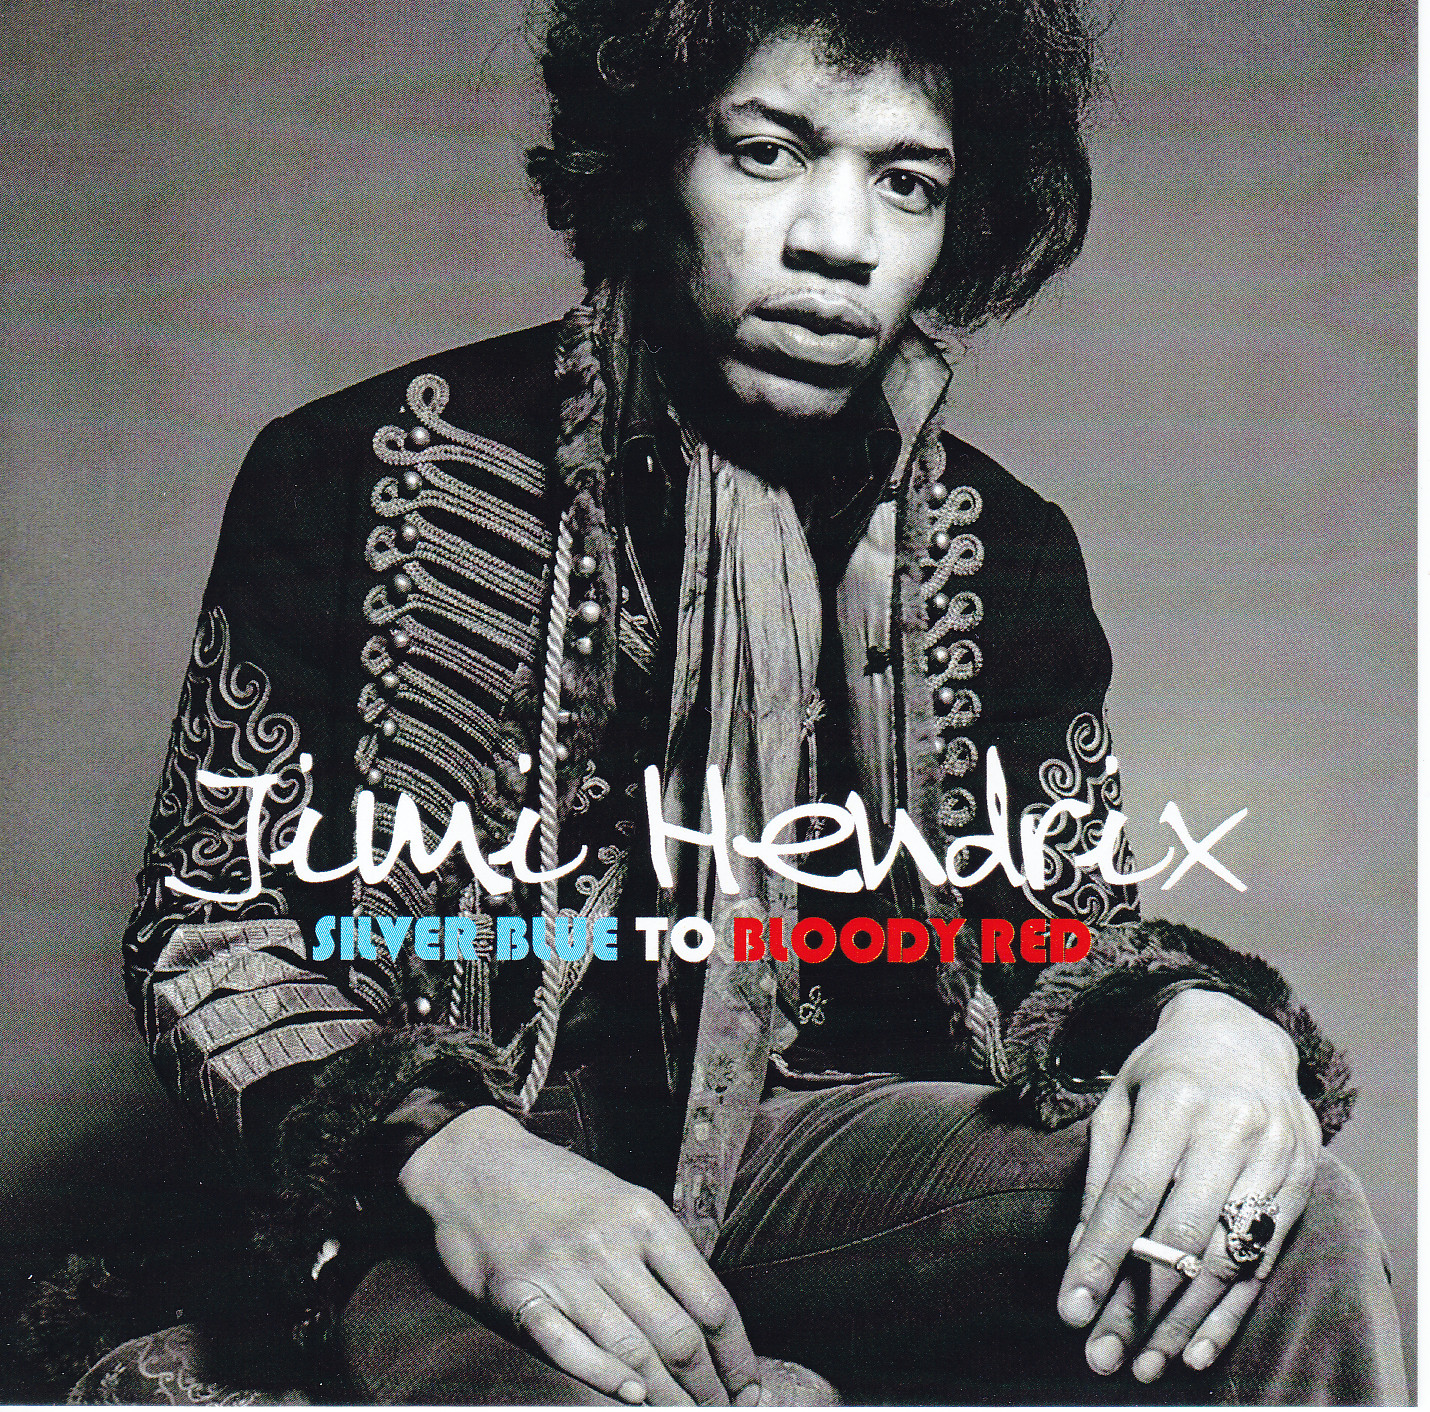 Jimi Hendrix - Silver Blue To Bloody Red (2Pro-CDR) Gypsy Eye Project   GEP-271A/B